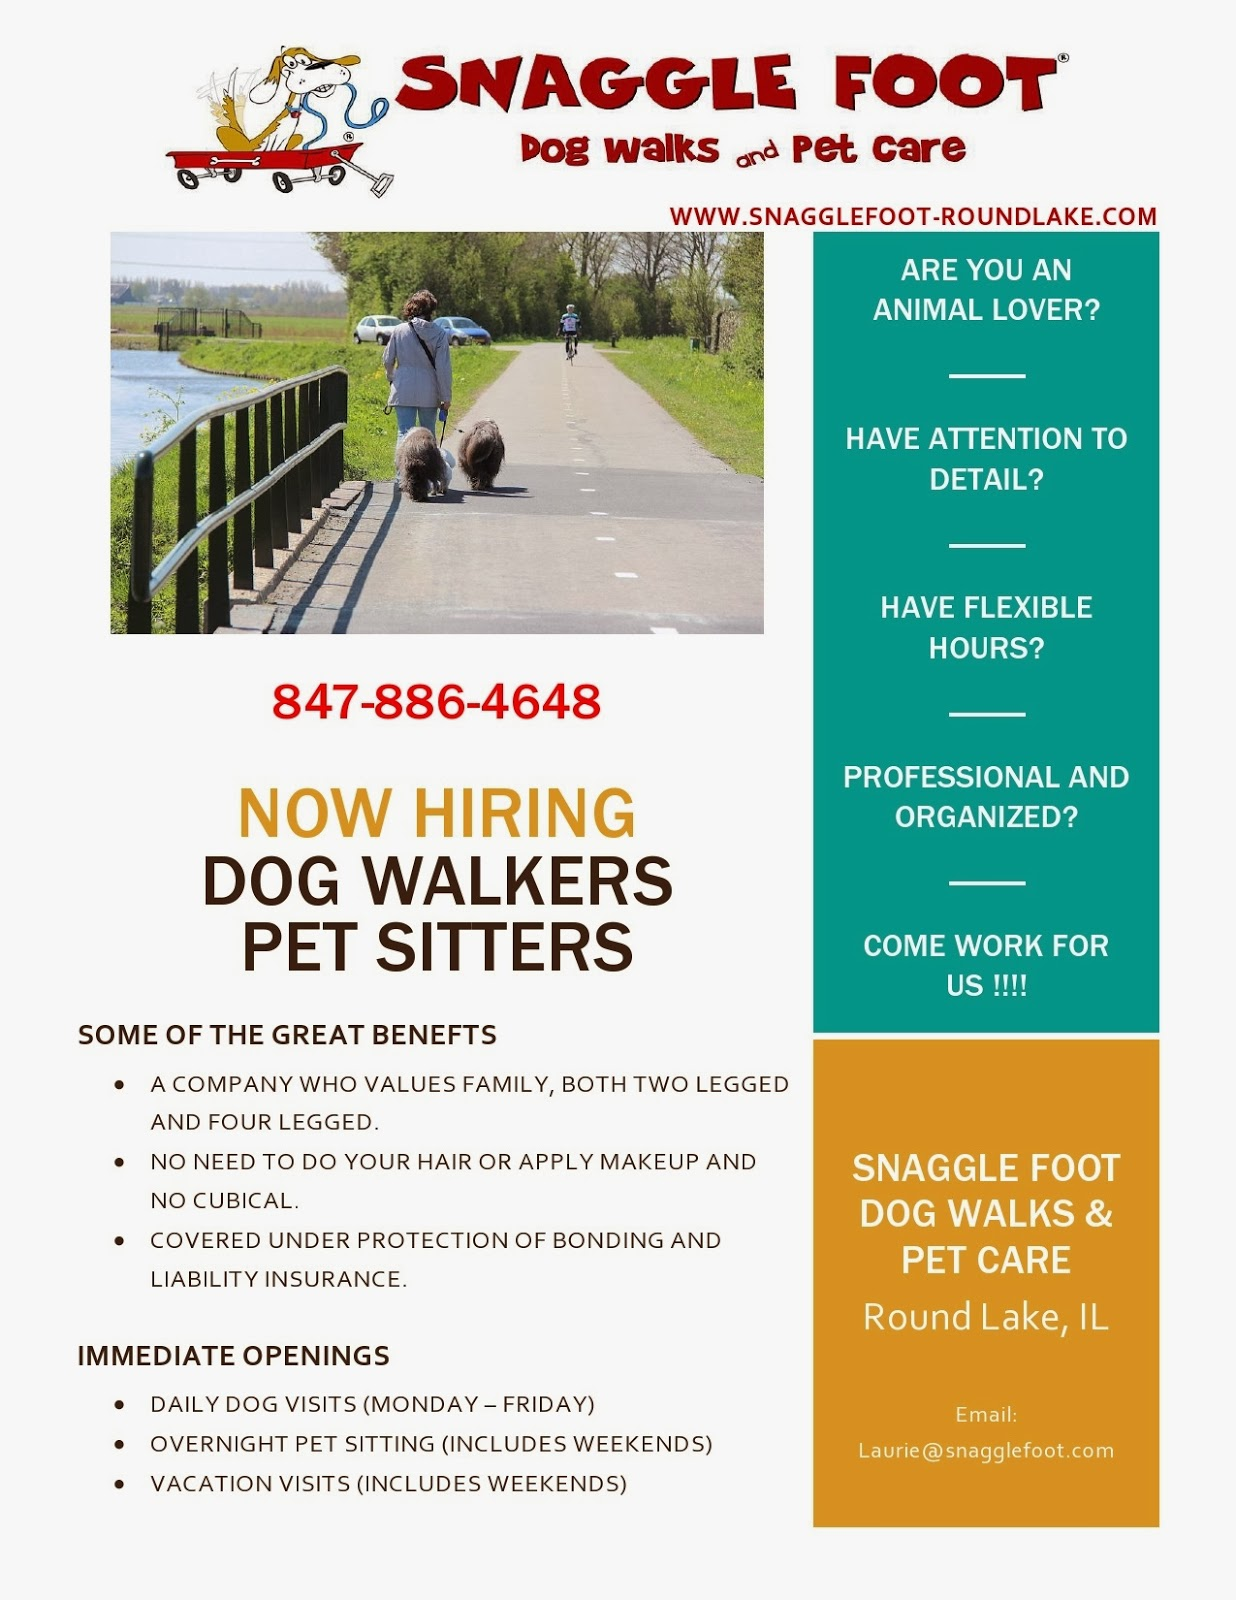 snaggle foot dog walks and pet care round lake il snaggle foot illinois area and are interested in pet sitting dog walking please apply online at snagglefoot roundlake com round lake employment html